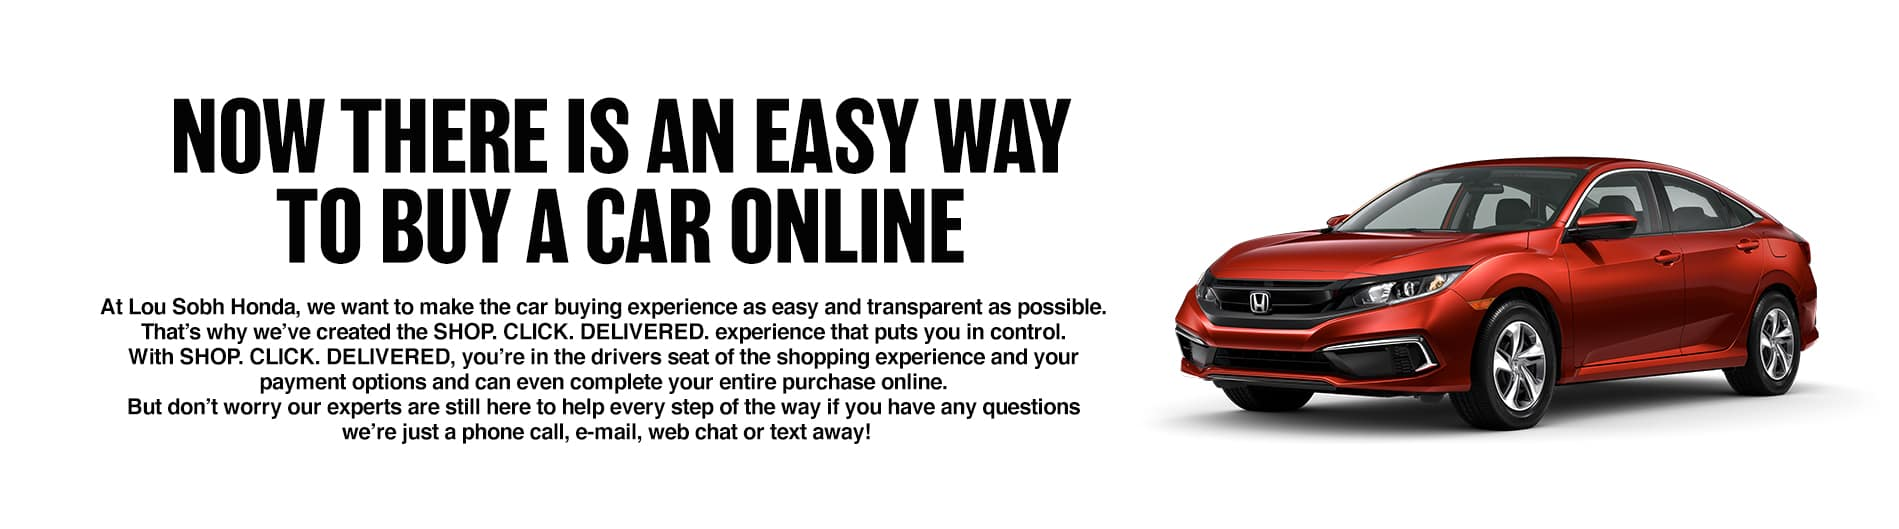 Now there is an easy way to buy a car online